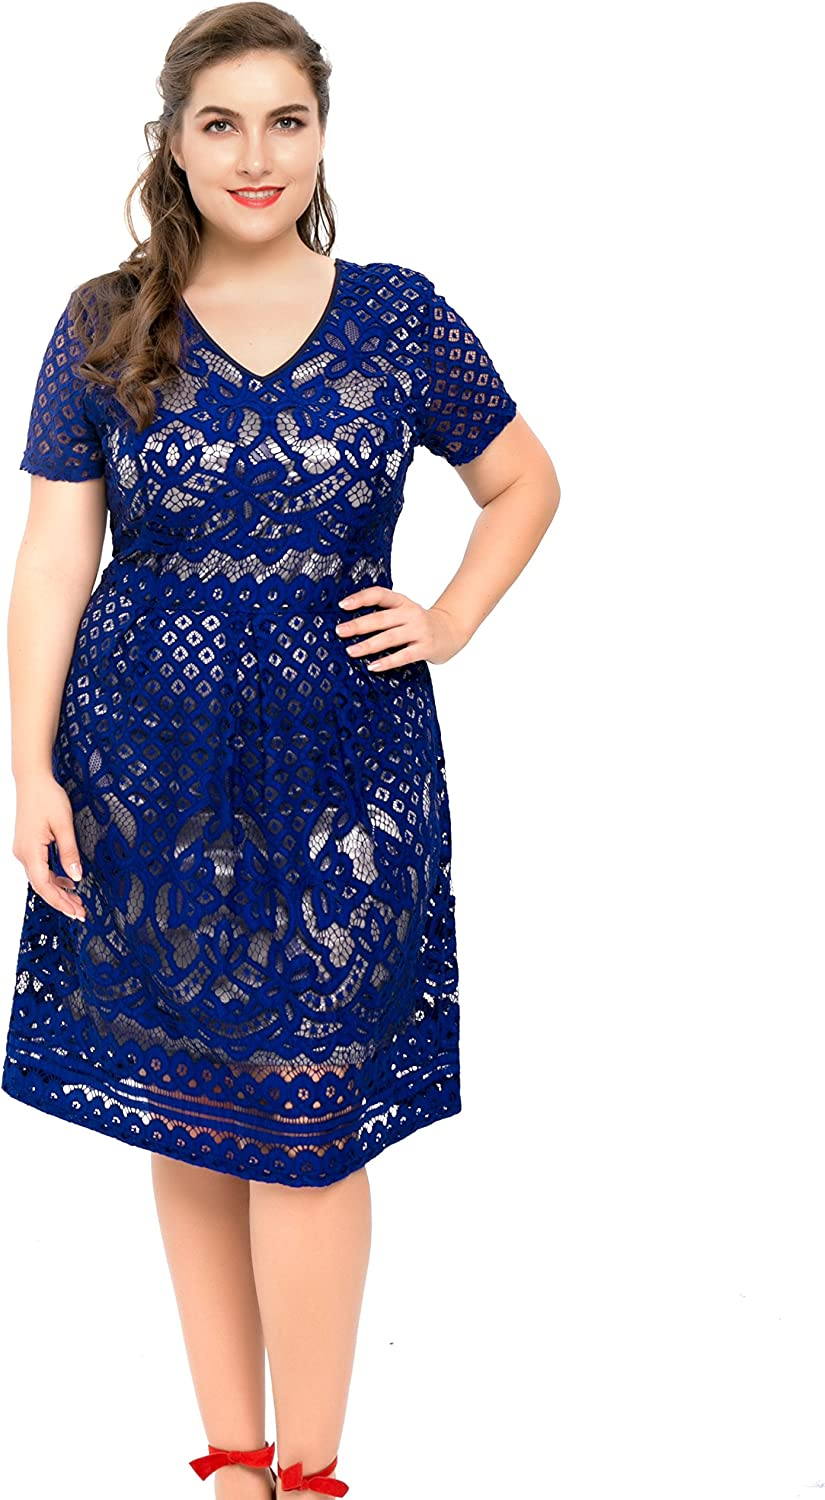 Together Size 16 Blue White Floral Guipure Lace Shift DRESS Current Season £85